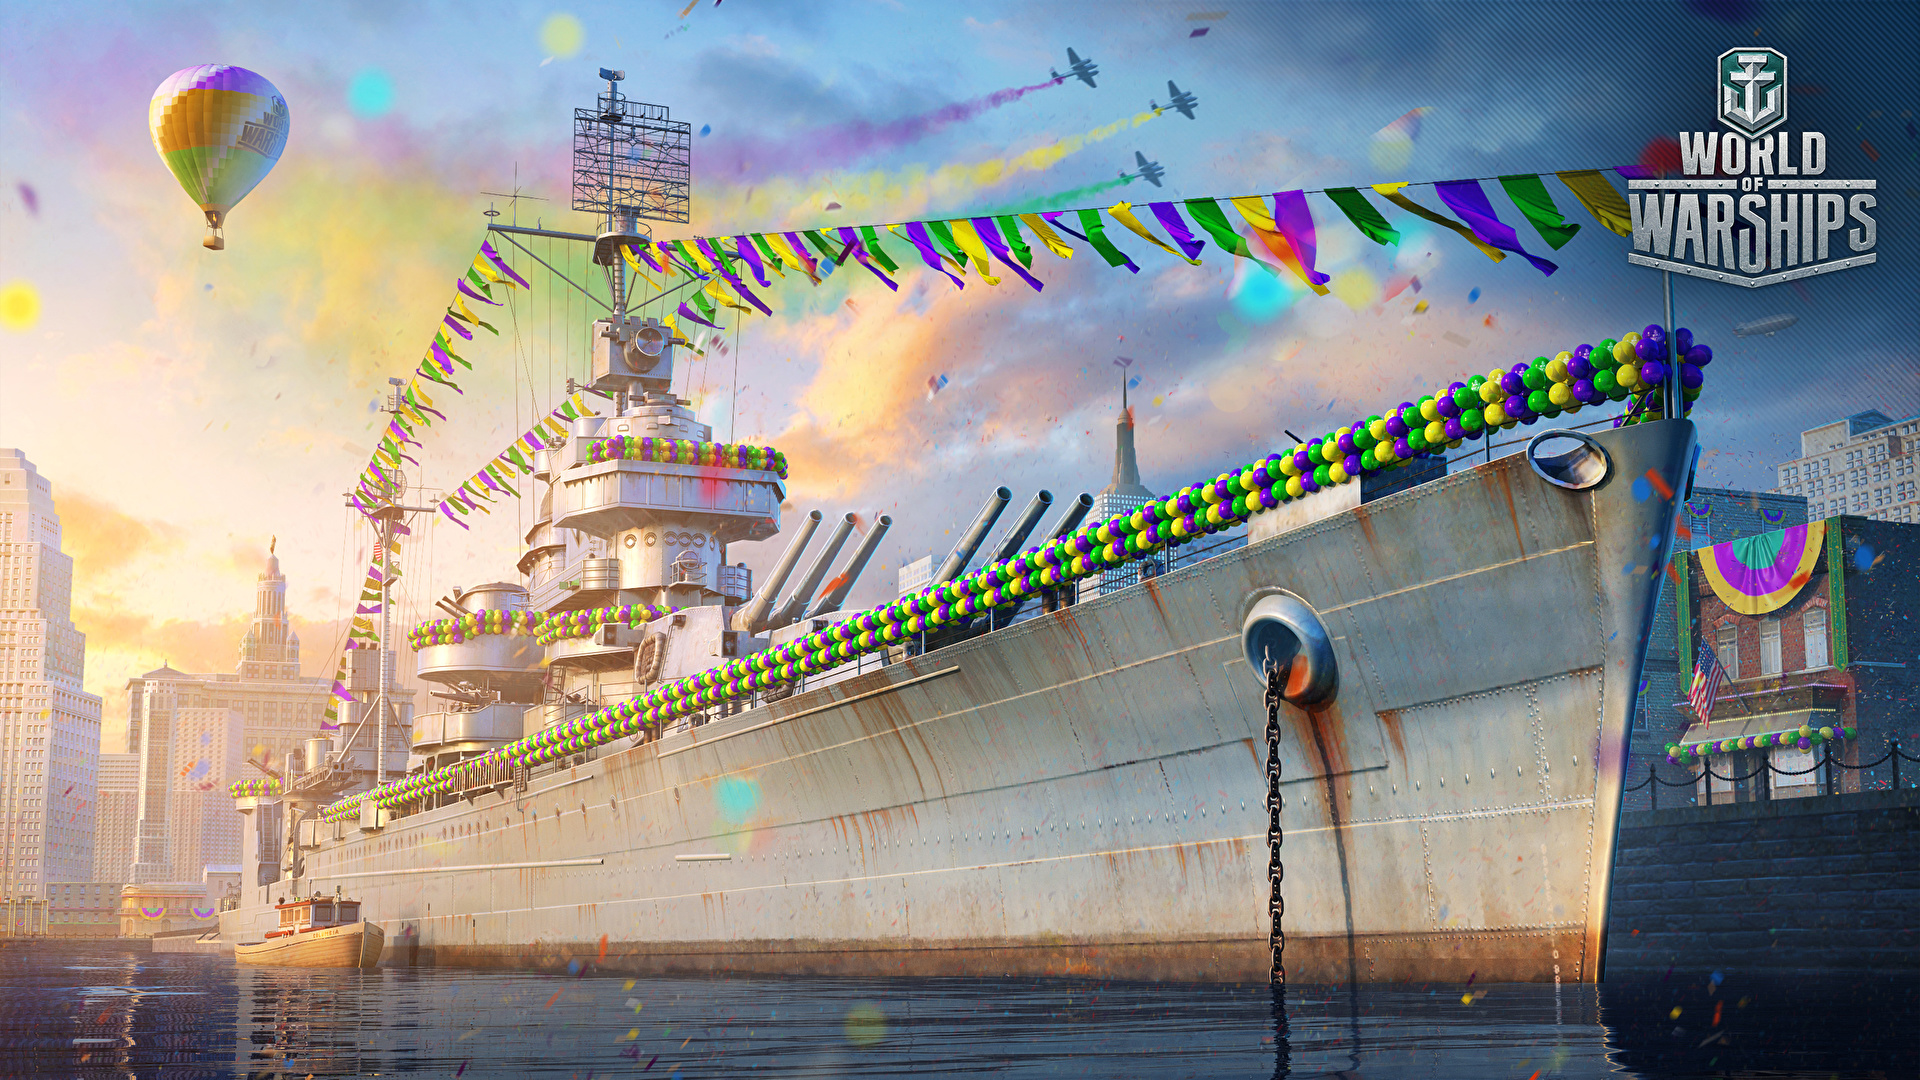 World Of Warships Backgrounds Pictures Images